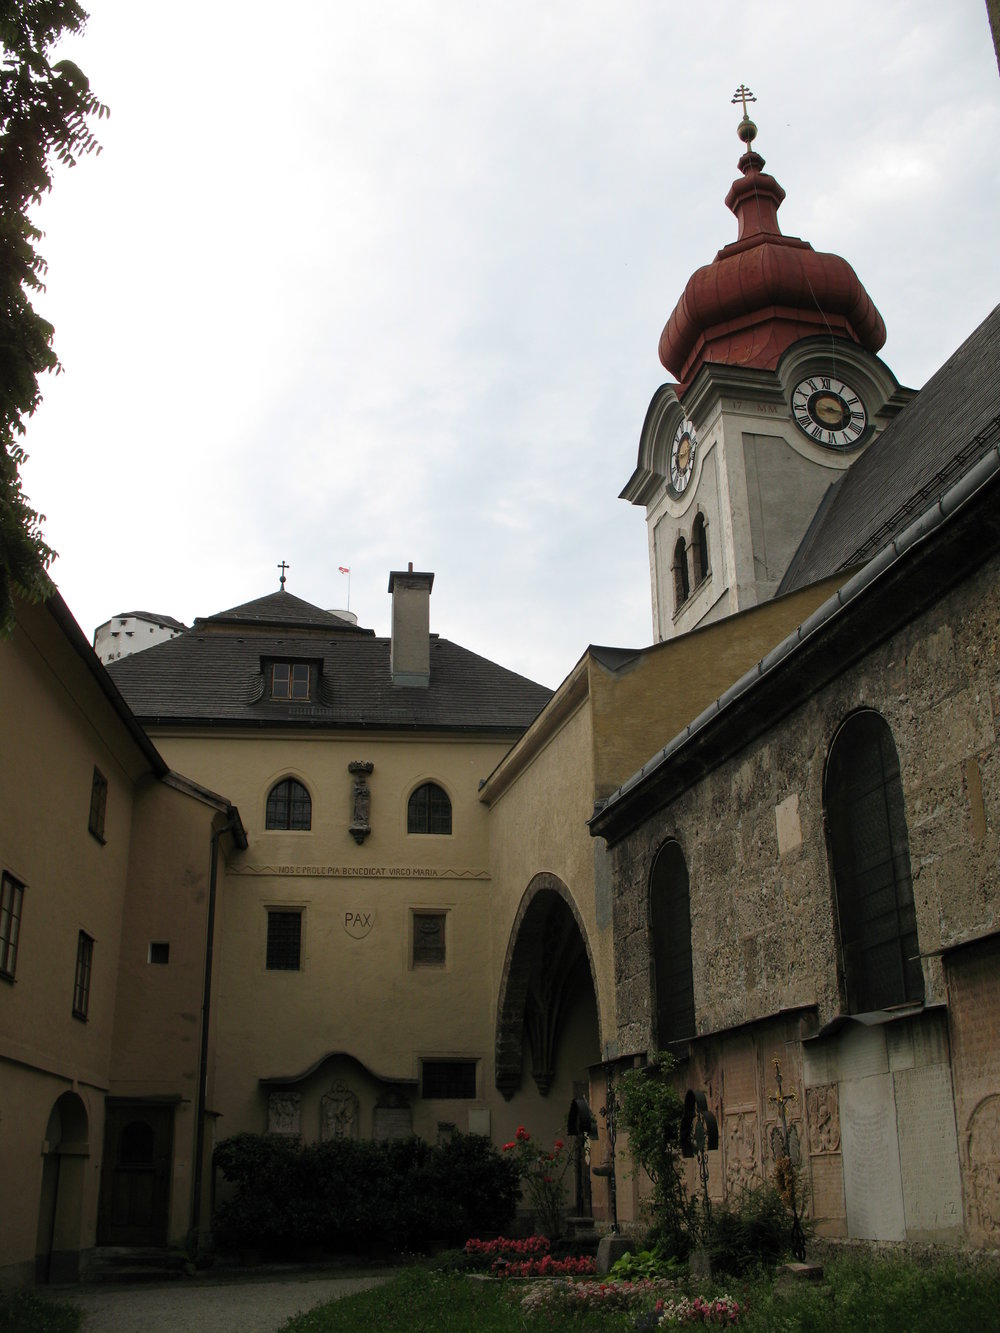 The Nonnberg Abbey photo by  Andrew Bossi  in  Wikimedia common   @thisisbossi